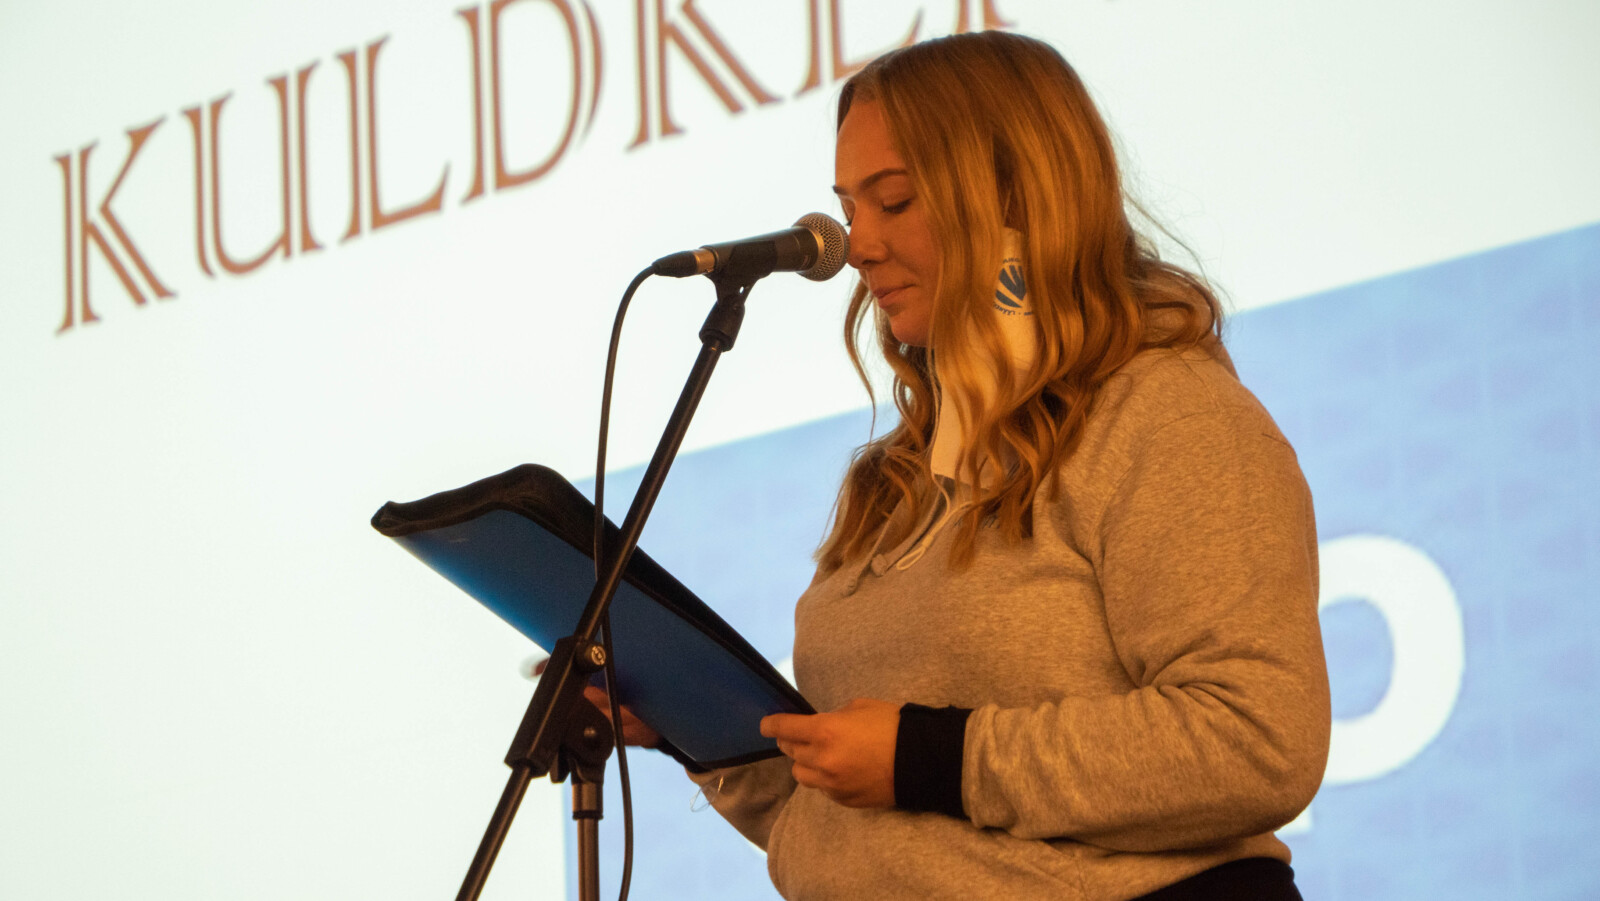 Karmen giving a speech at a youth conference.